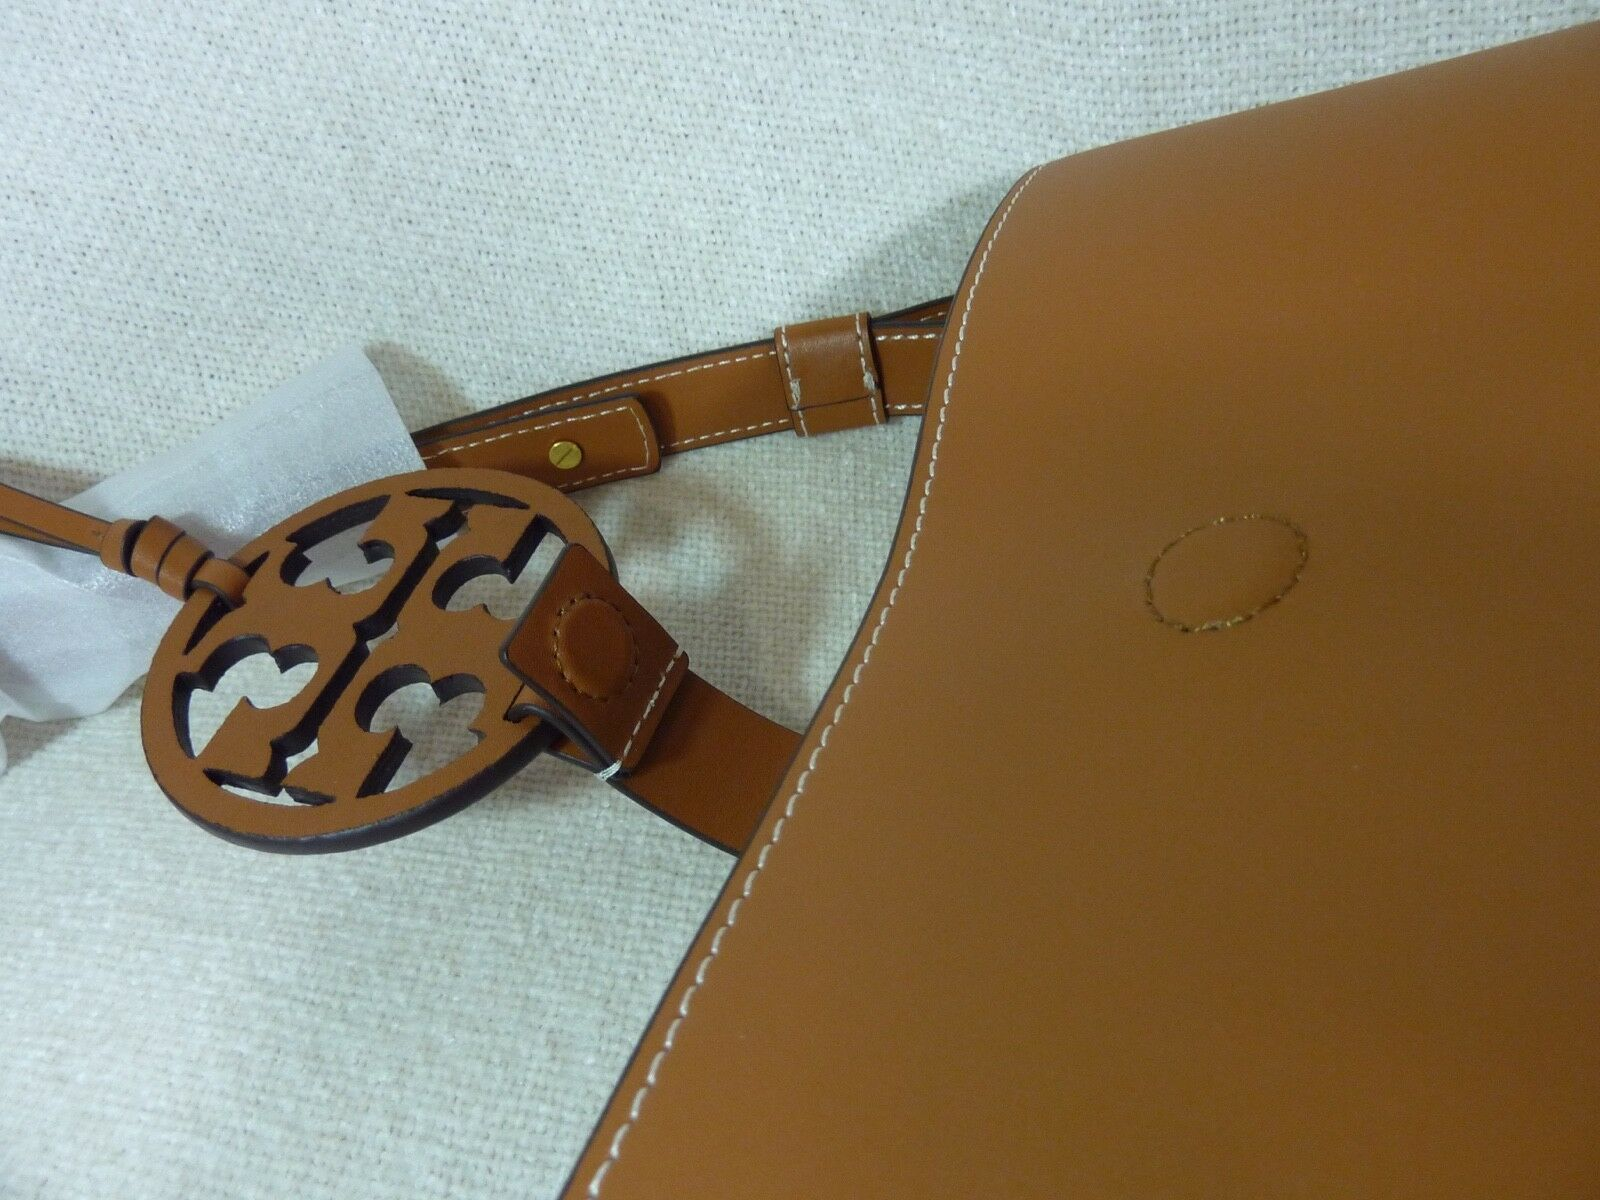 NWT Tory Burch Aged Camello Miller Hobo/Shoulder Tote - Minor Imperfection image 10